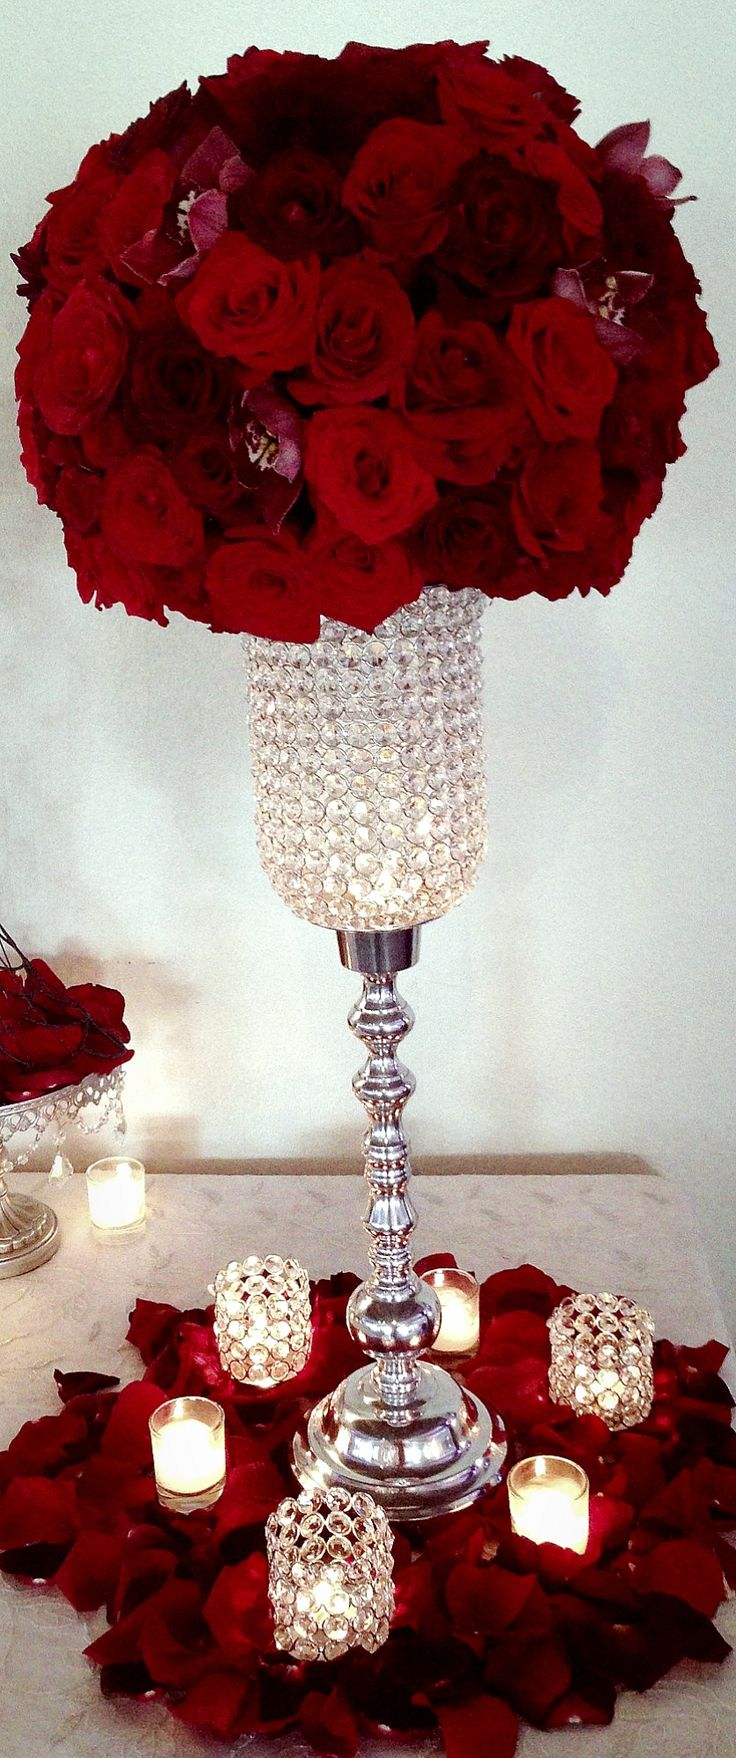 25 Best Ideas about Red Centerpieces on Pinterest  Red wedding centerpieces Rose centerpieces